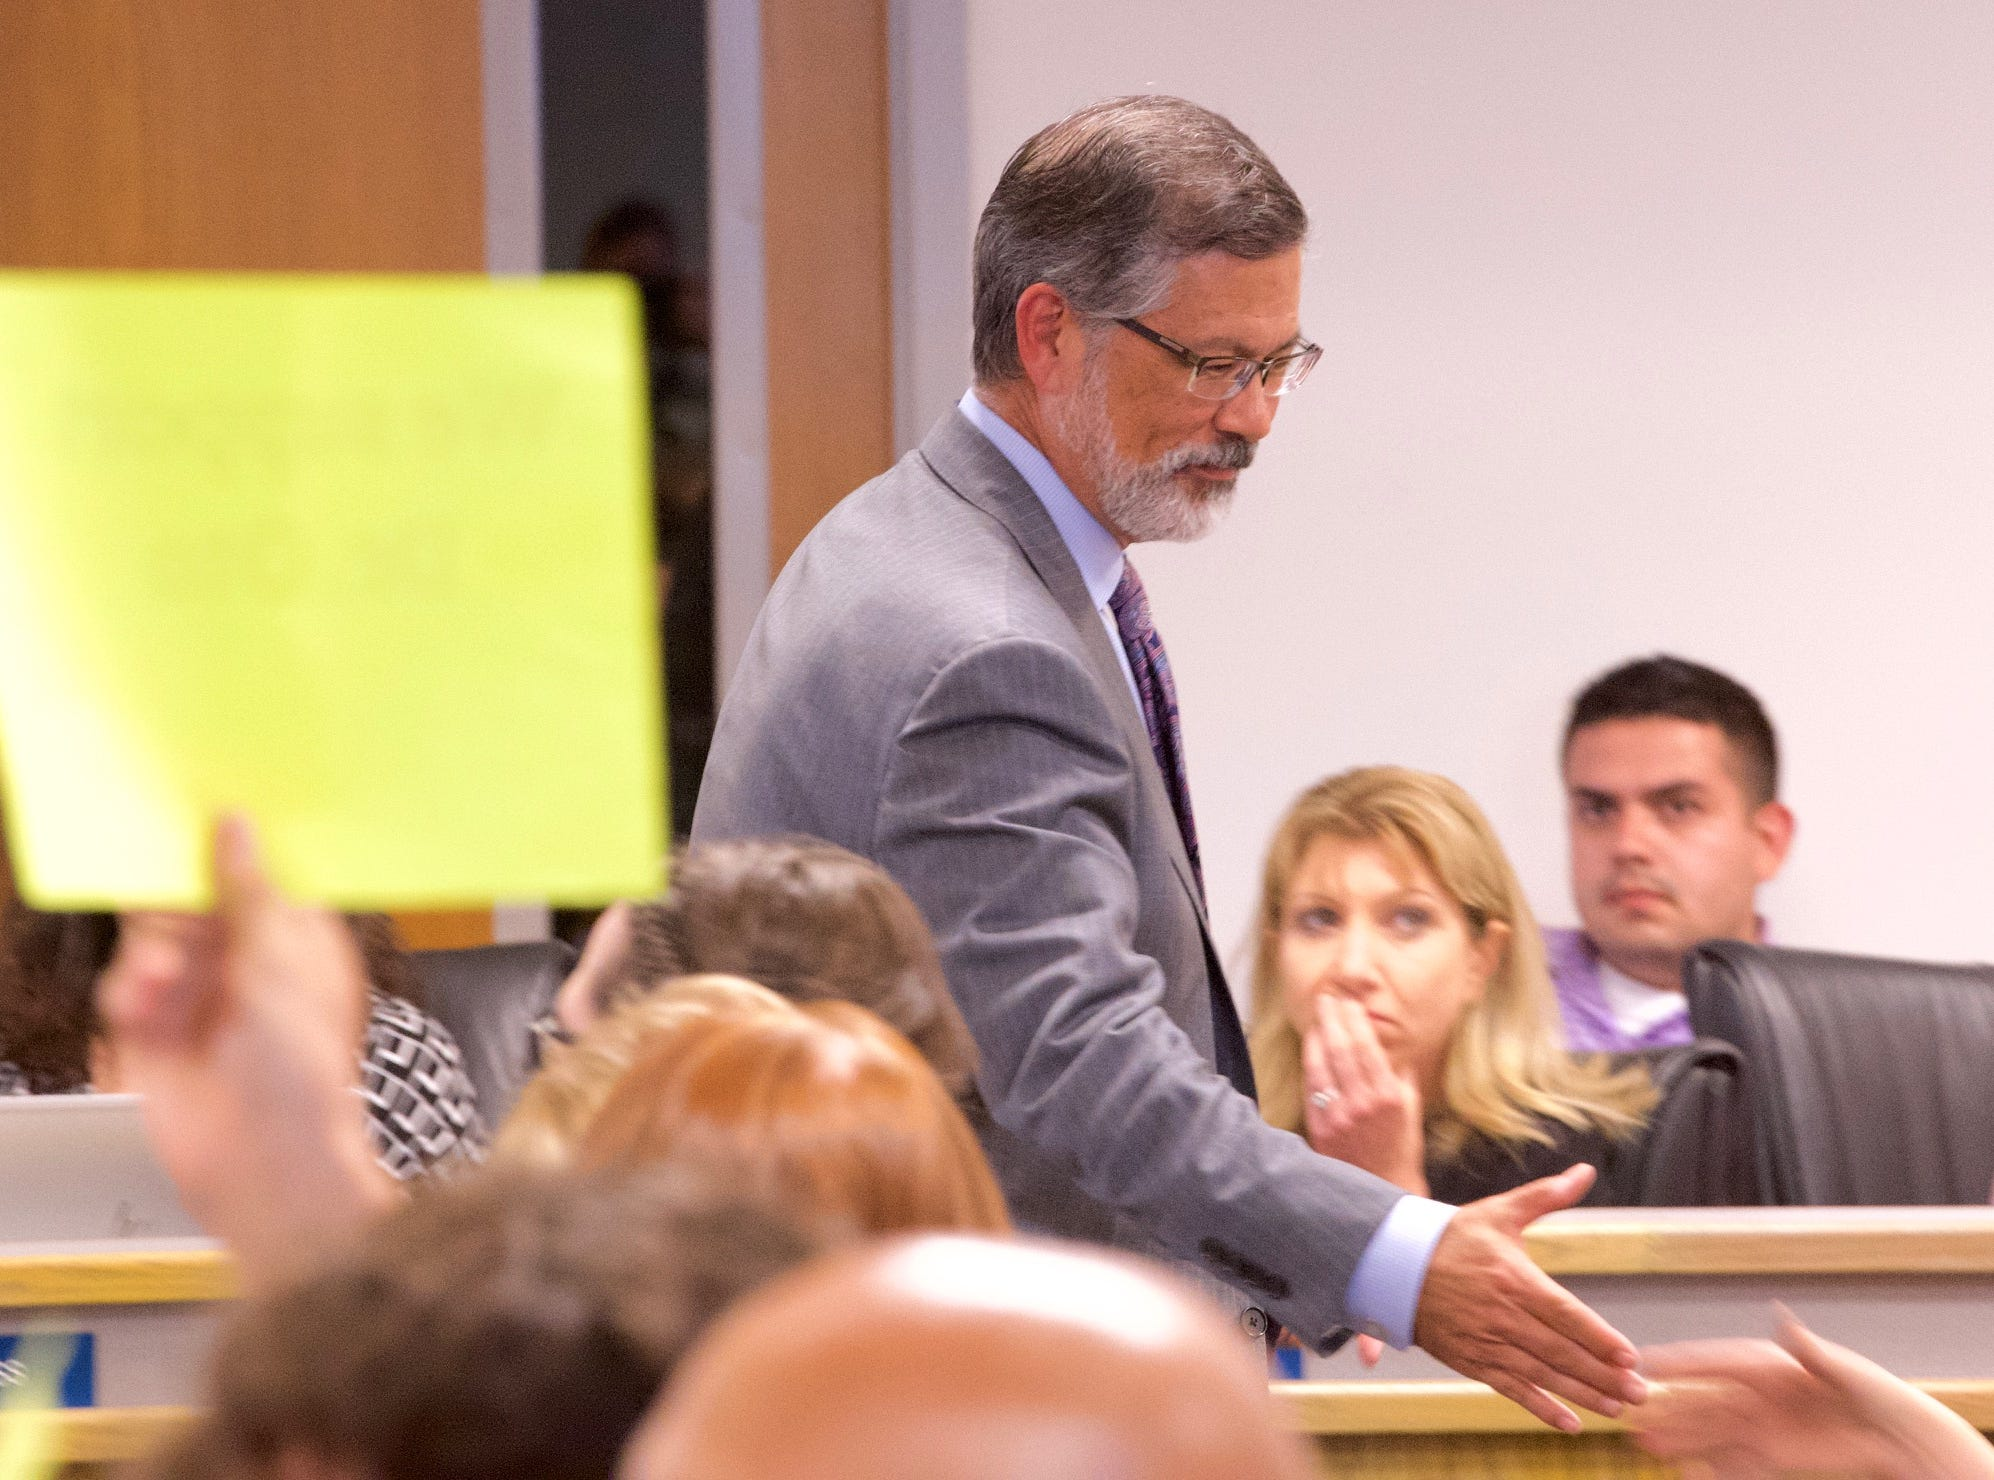 Superintendent Todd Oto shakes the hands of supporters during a special board meeting on Tuesday in Visalia.